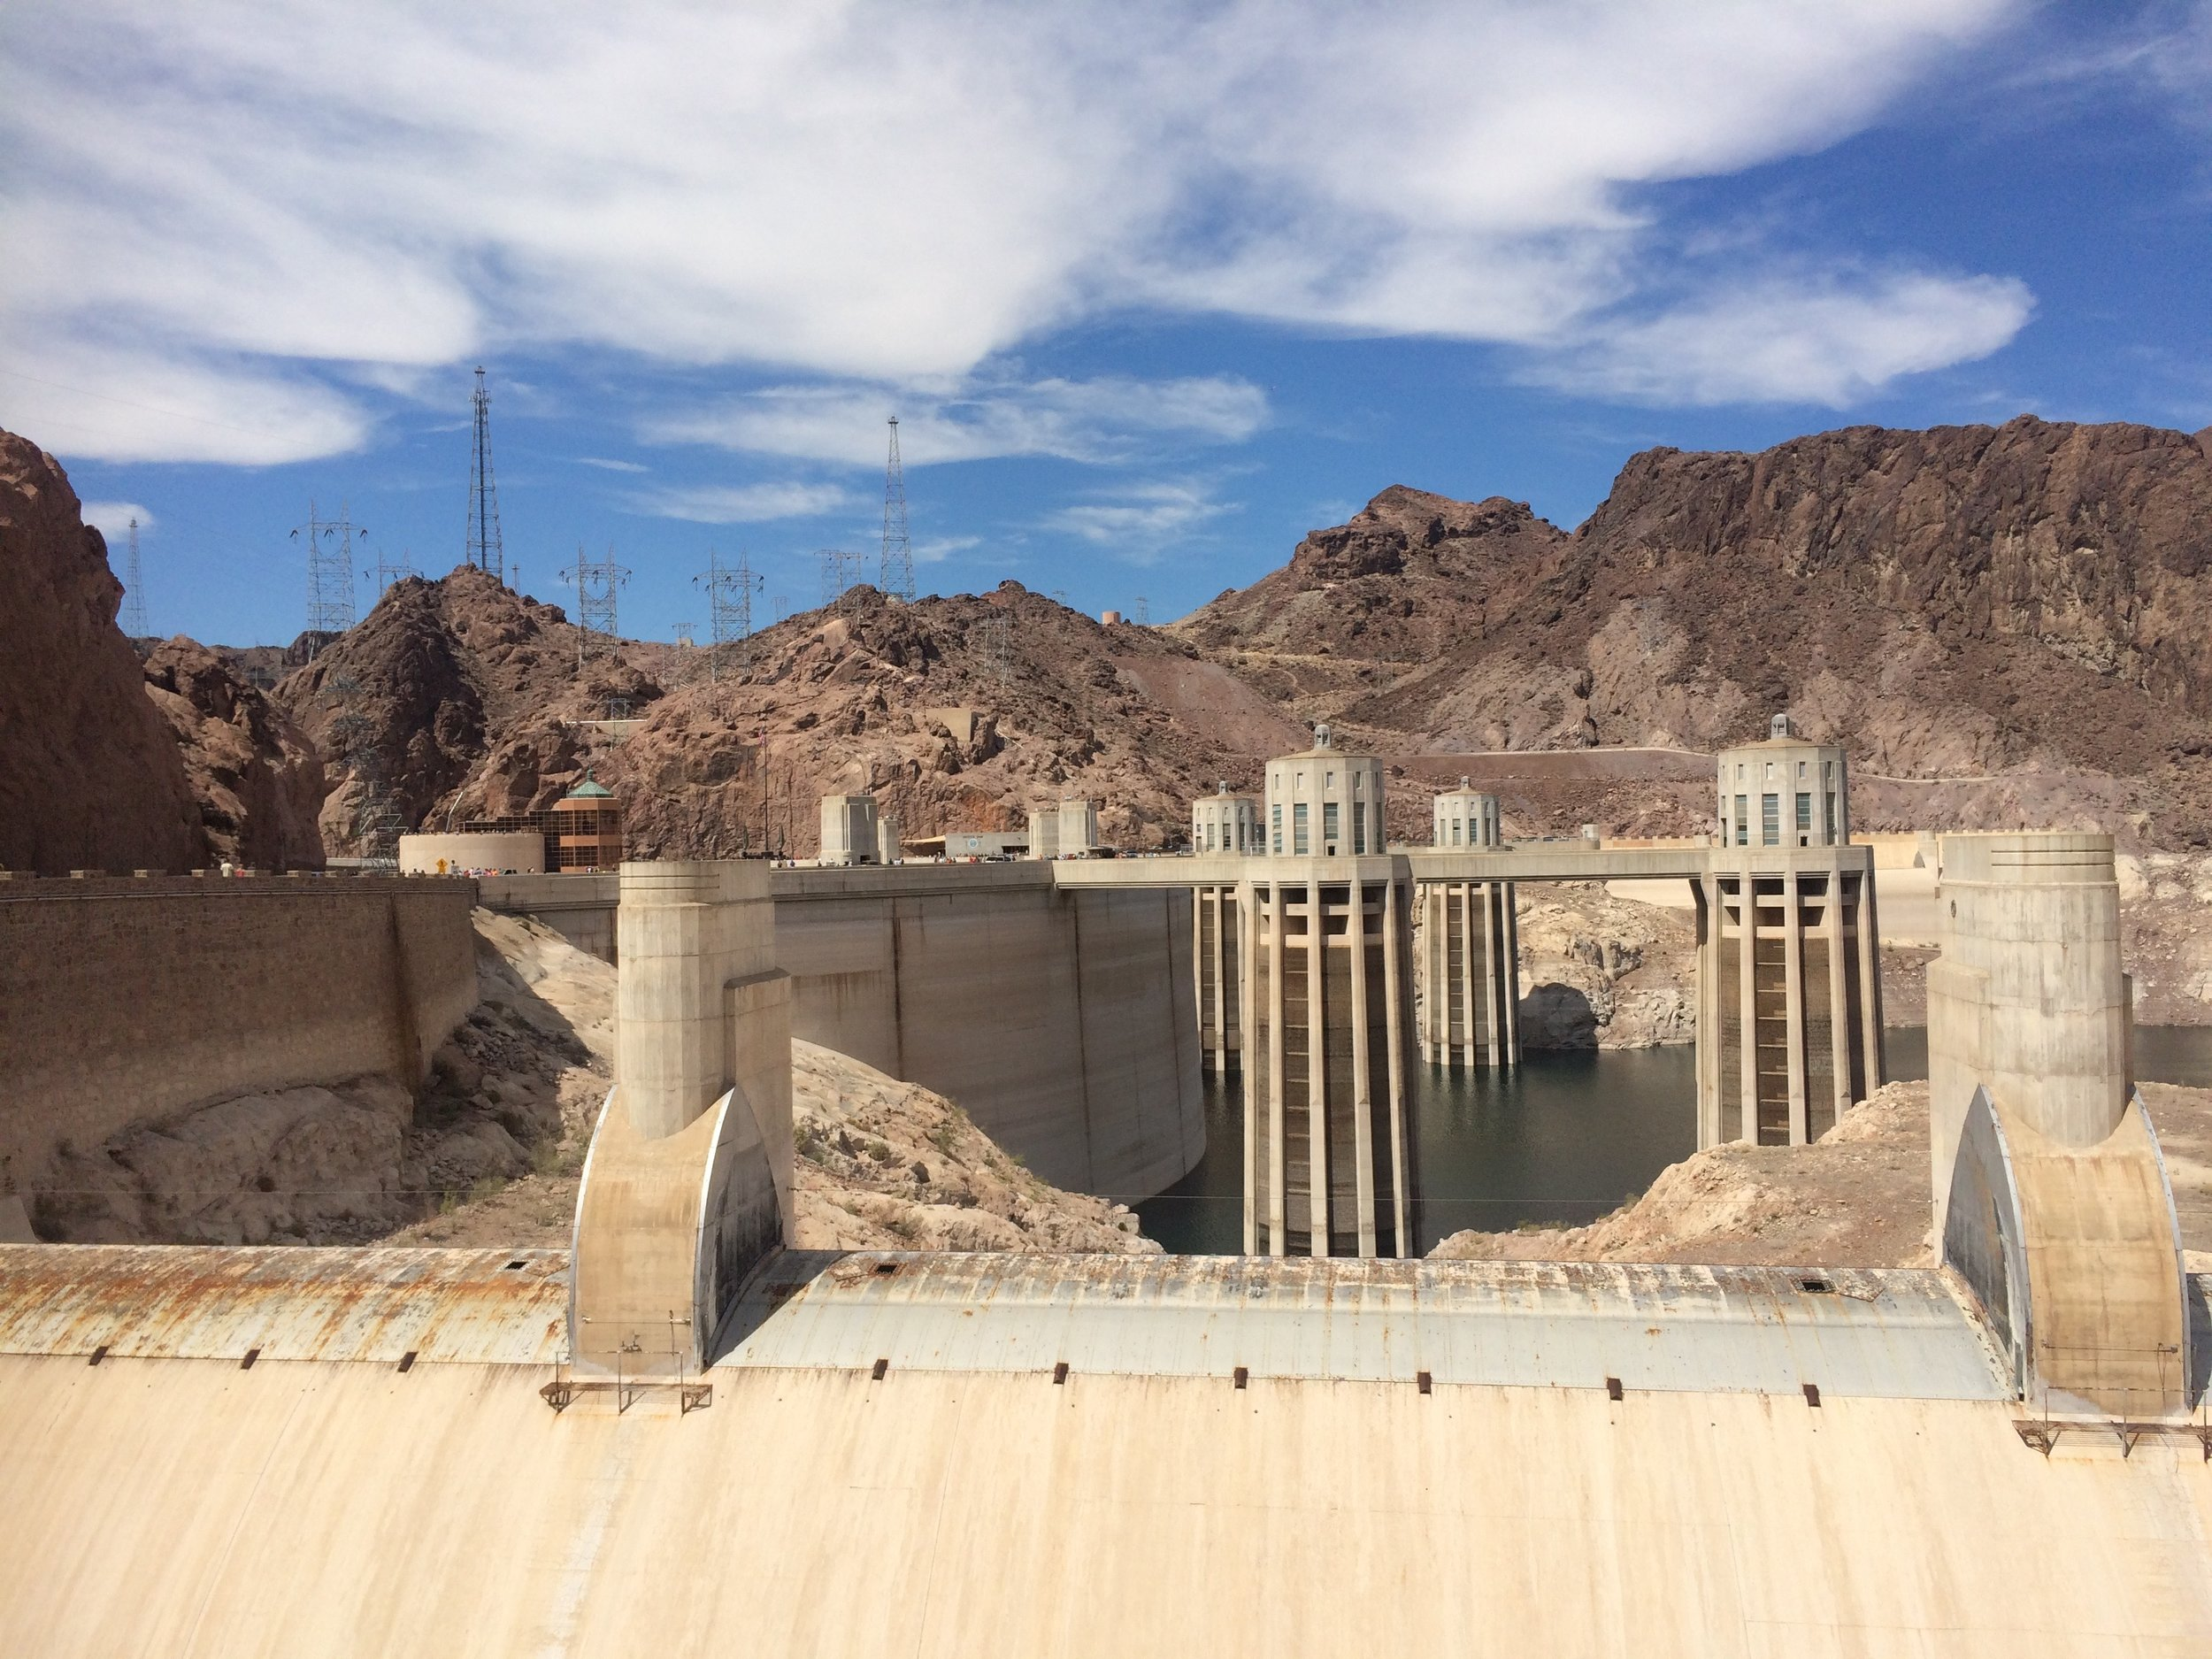 Hoover Dam intake towers.